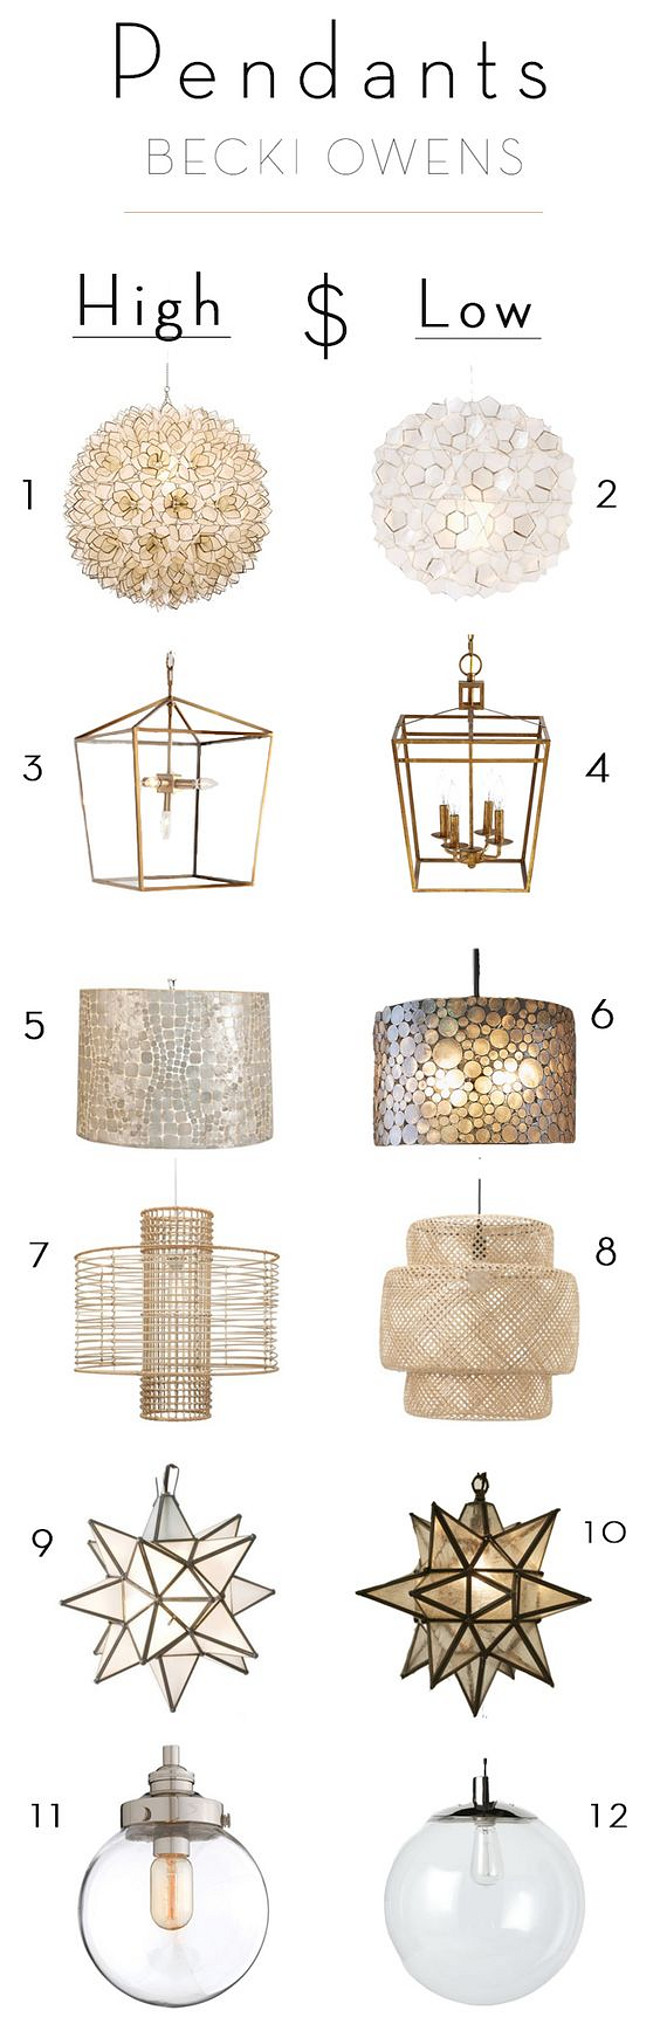 High and Low Pendants Similar Pendant Lighting with High and Low: 1: Splurge: Neiman Marcus Capiz-Shell 1-Light Pendant Price: $690.00. 2: Save: West Elm Capiz Flower Pendant $199 – $299. 3: Splurge: Regina-Andrew Design Camden 5-Light Lantern $423.75. 4: Save: Wisteria Admiral Pendant Lantern $302.97. 5: Splurge: Kathy Kuo Home Cobblestone Coastal Beach Capiz Shell 14.5 Inch Round Pendant $788. 6: Save: Pottery Barn Marina Drum Pendant $399. 7: Splurge: One Kings Lane Deco 1-Light Pendant, Almond Selamat. 8: Save: Ikea SINNERLIG Pendant lamp, bamboo $59.99. 9: Splurge: Kathy Kuo Home Polaris Hollywood Regency Star Frosted Glass Pendant - 20 Inch $373. 10: Save: Pottery Barn Olivia Star Pendant, Bronze finish $159. 11: Splurge: Arteriors 49911 Reeves Small Glass Pendant, Glass and Steel $432.00. 12: Save: West Elm Globe Pendant - Clear $89 High and Low Pendant Prices. Compare High and Low Pendant. Splurge and Save Pendant Lighting. #HighandLow #Pendant #PendantLighting #PendantPrices #SplurgeandSavePendantLighting By Becki Owens